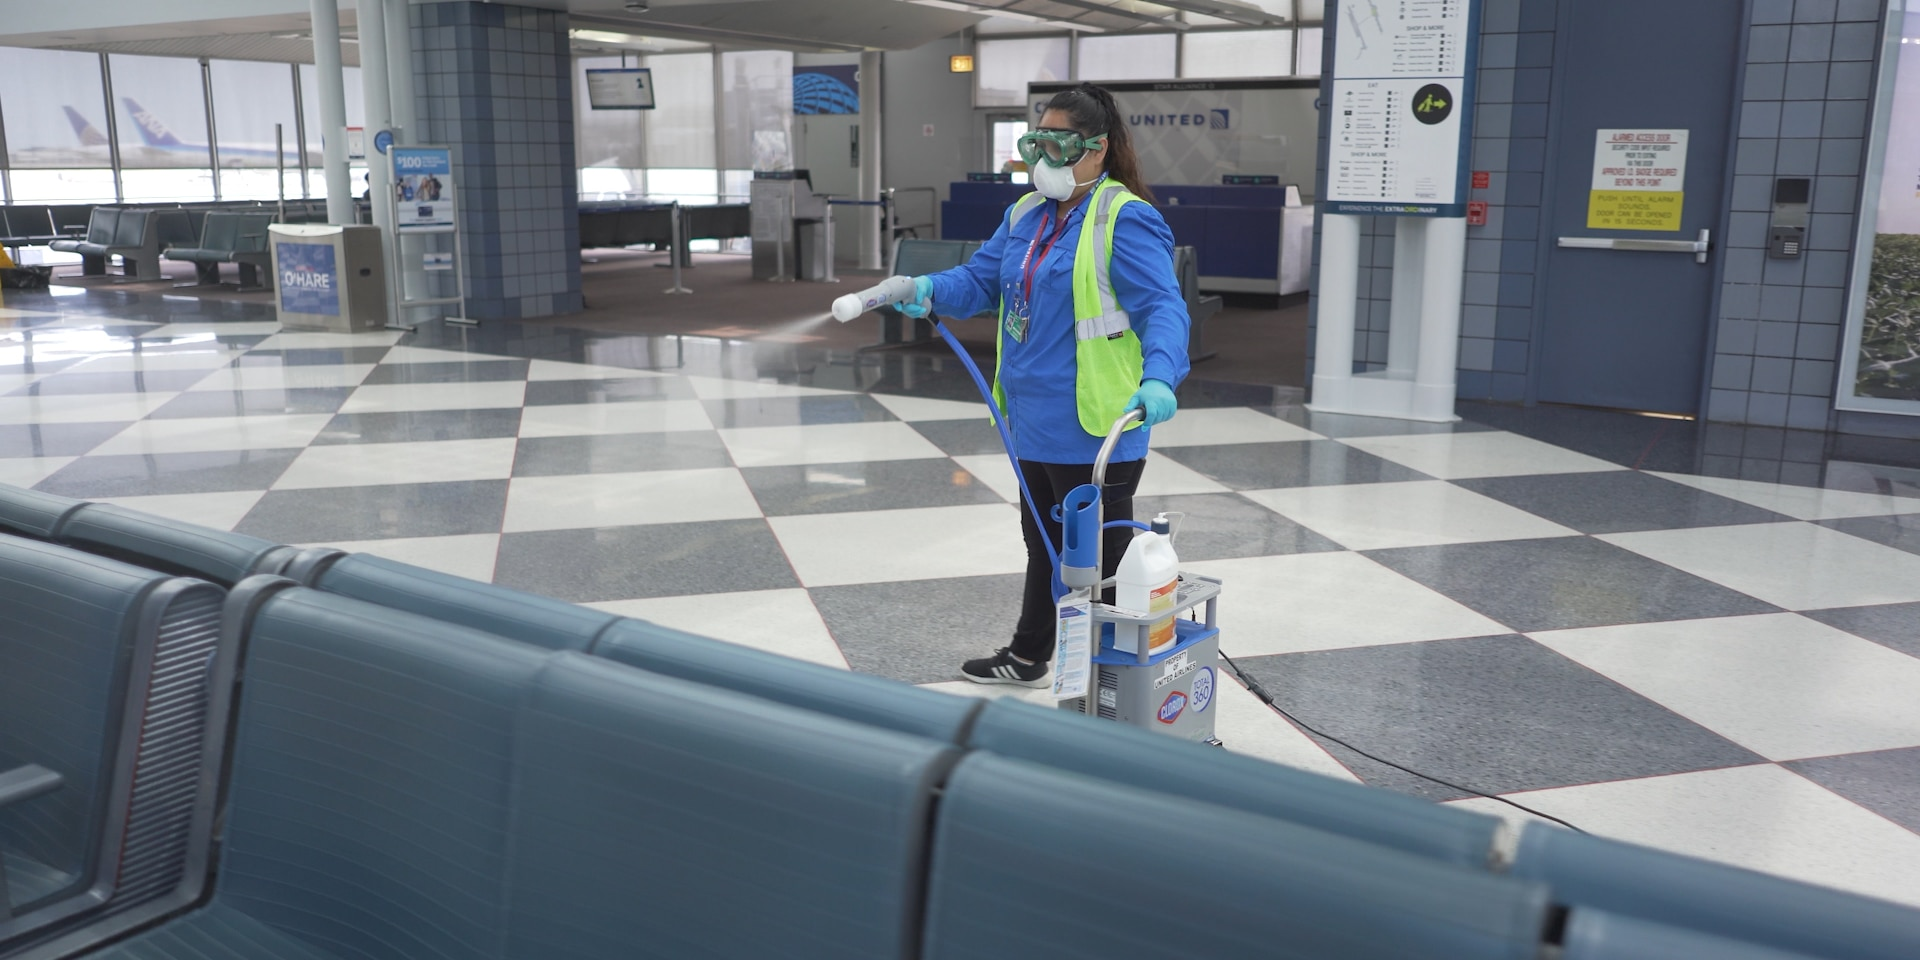 Clorox Total 360 System is a portable machine that can disinfect surfaces. (United Airlines)